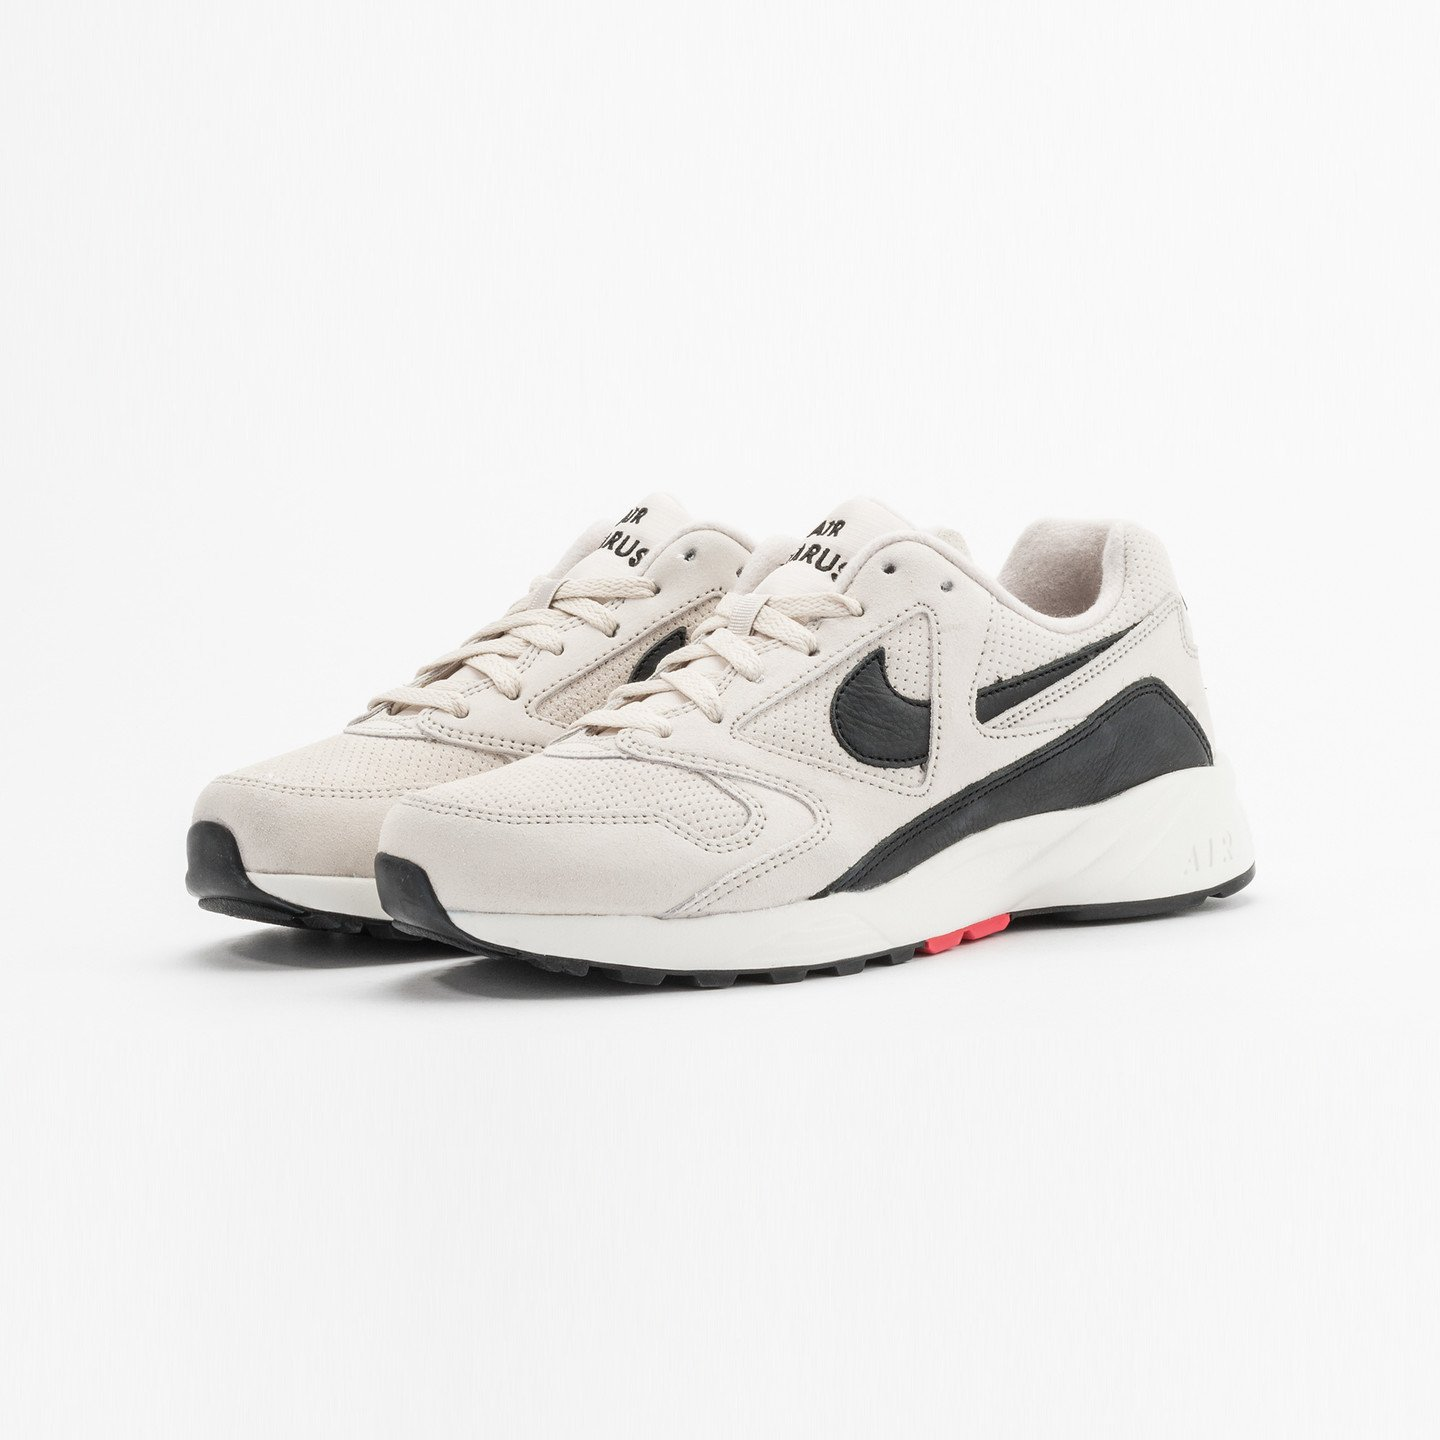 Nike Air Icarus Extra QS Sail / Black 882019-100-43